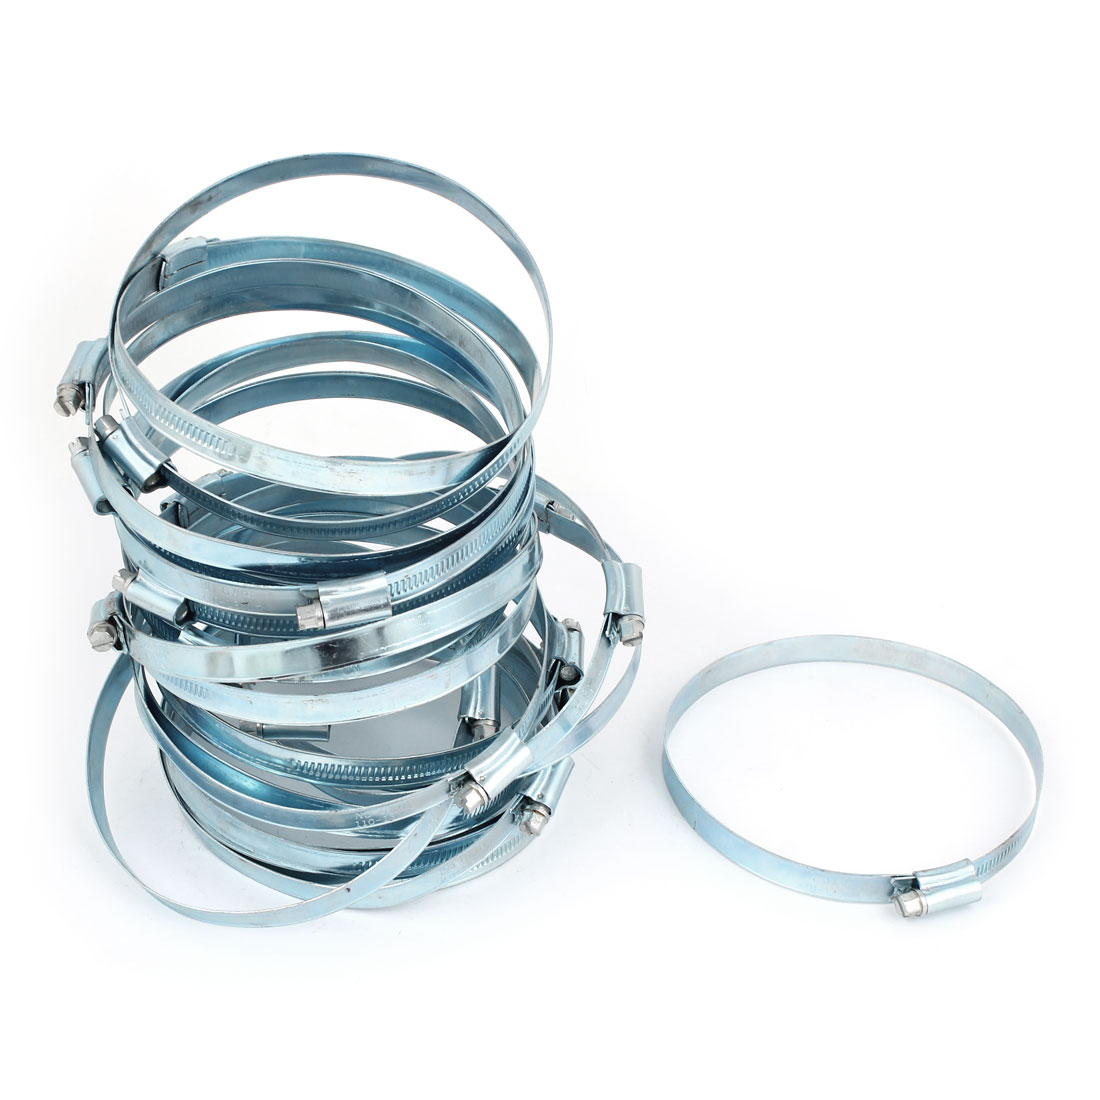 Silver Tone Adjustable 110 -130mm Hose Clamps Fastener 12mm Wide 20 Pcs